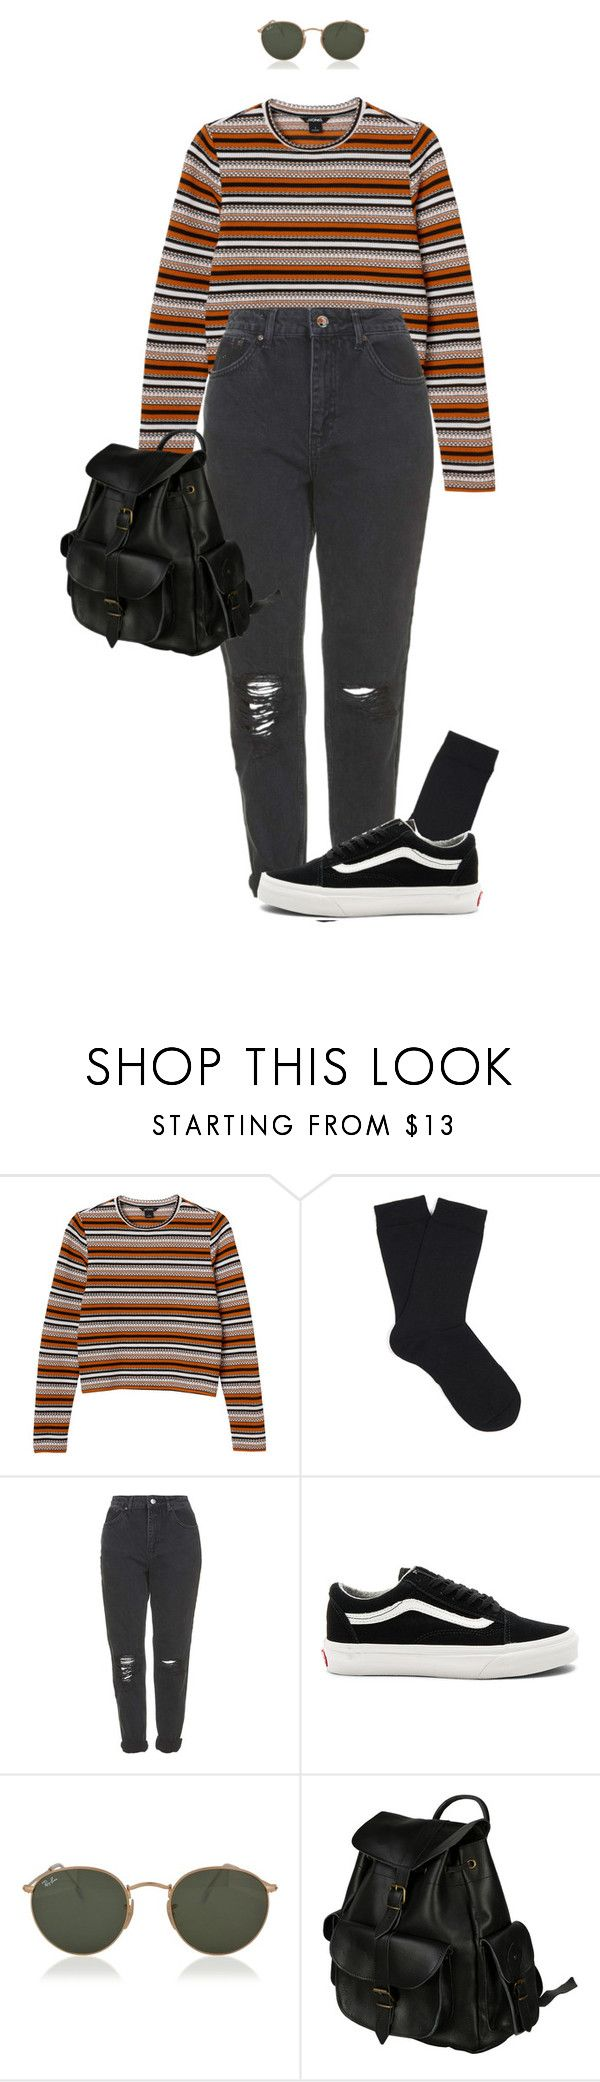 """Nothing could ever bring me down"" by pageslearntothink on Polyvore featuring Monki, Falke, Topshop, Vans, Ray-Ban and VIPARO"